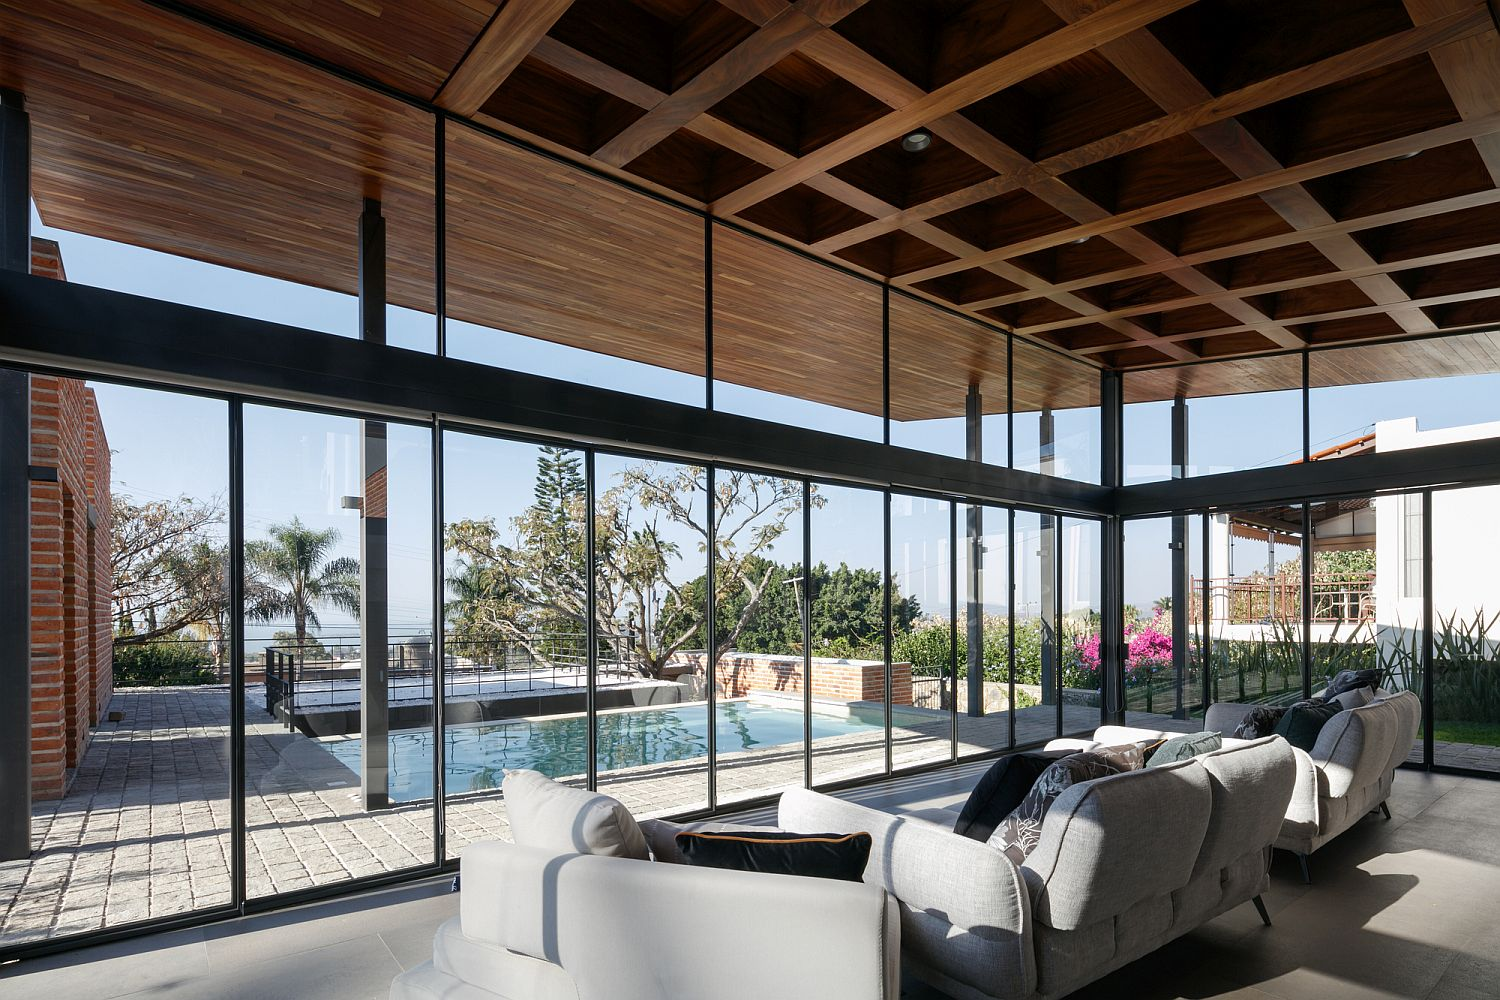 Glass walls and sliding glass doors connect the interior with the pool area